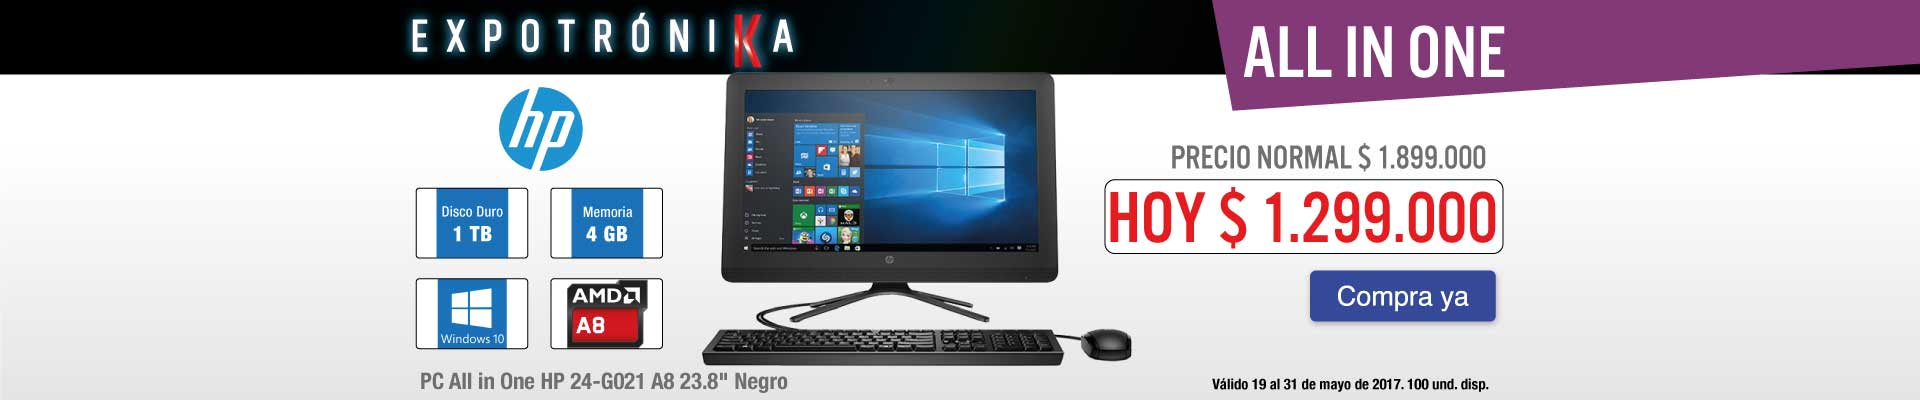 PPAL KT INF - PC All in One HP 24-G021 A8 23.8